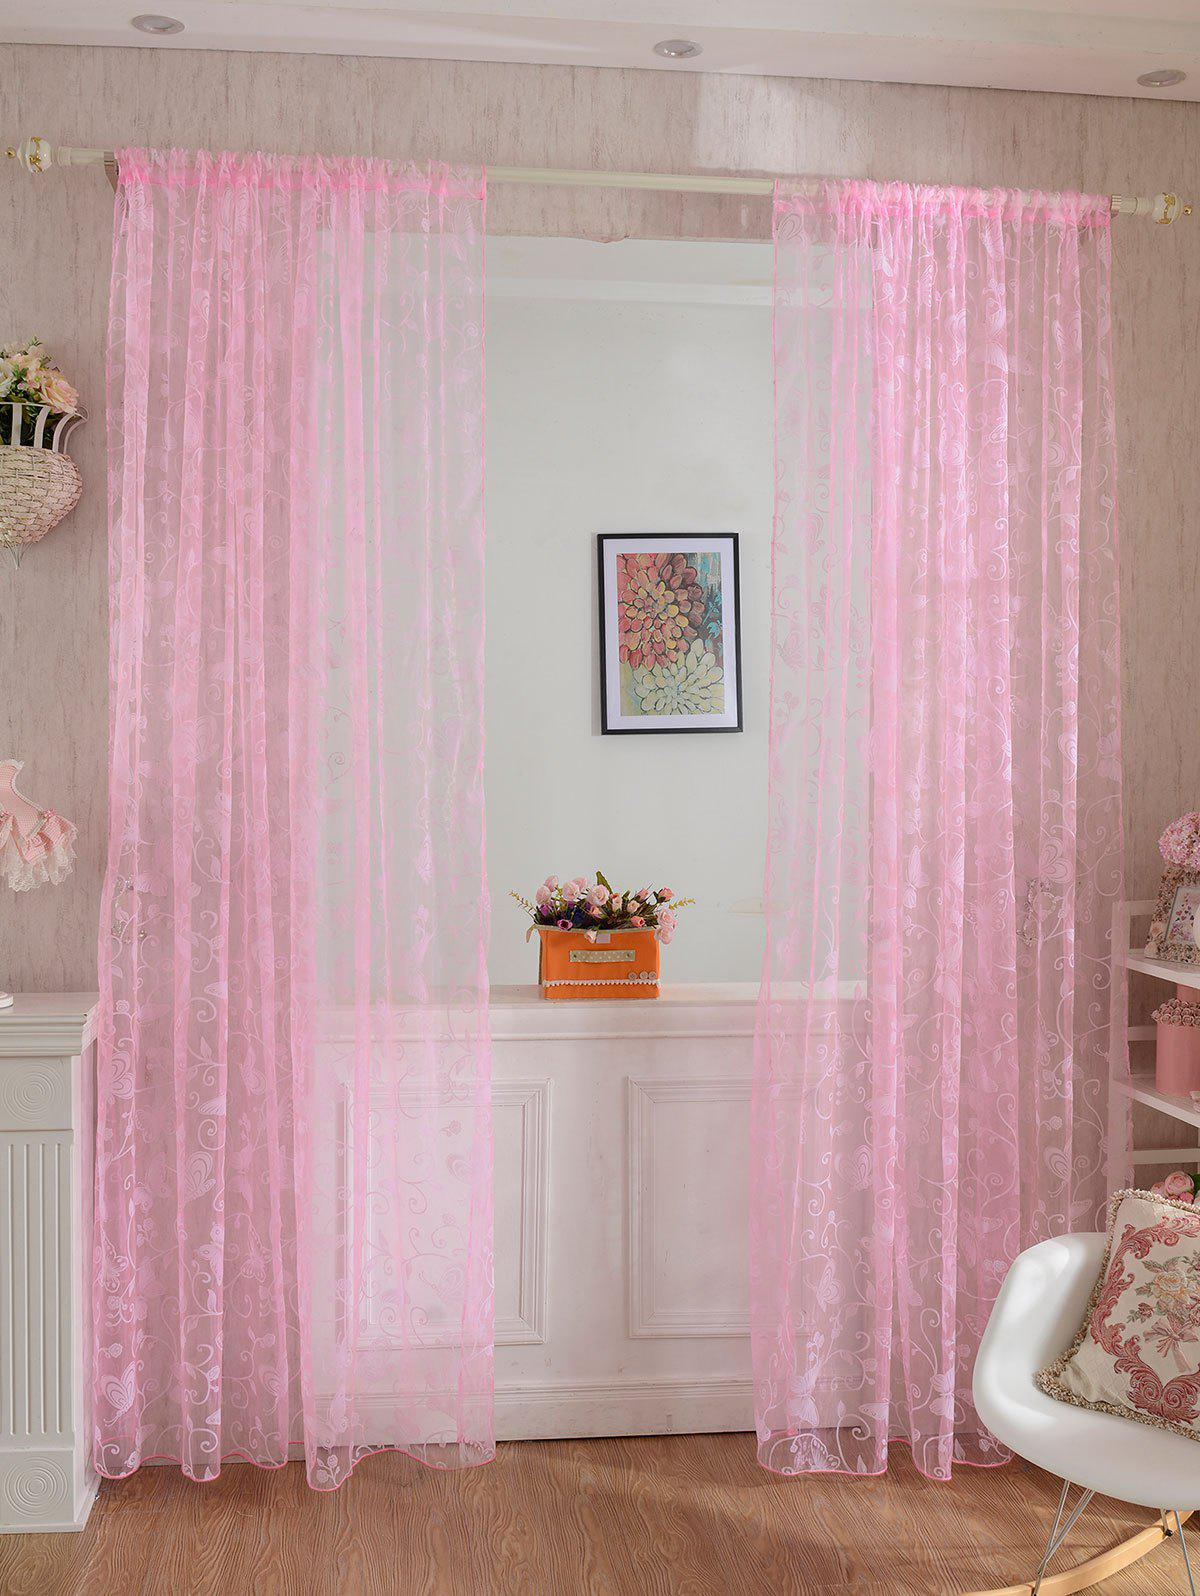 2Pcs/Set Butterflies Embroidery Window Sheer Tulle Curtain window decor roman pastoral style sheer tulle curtain